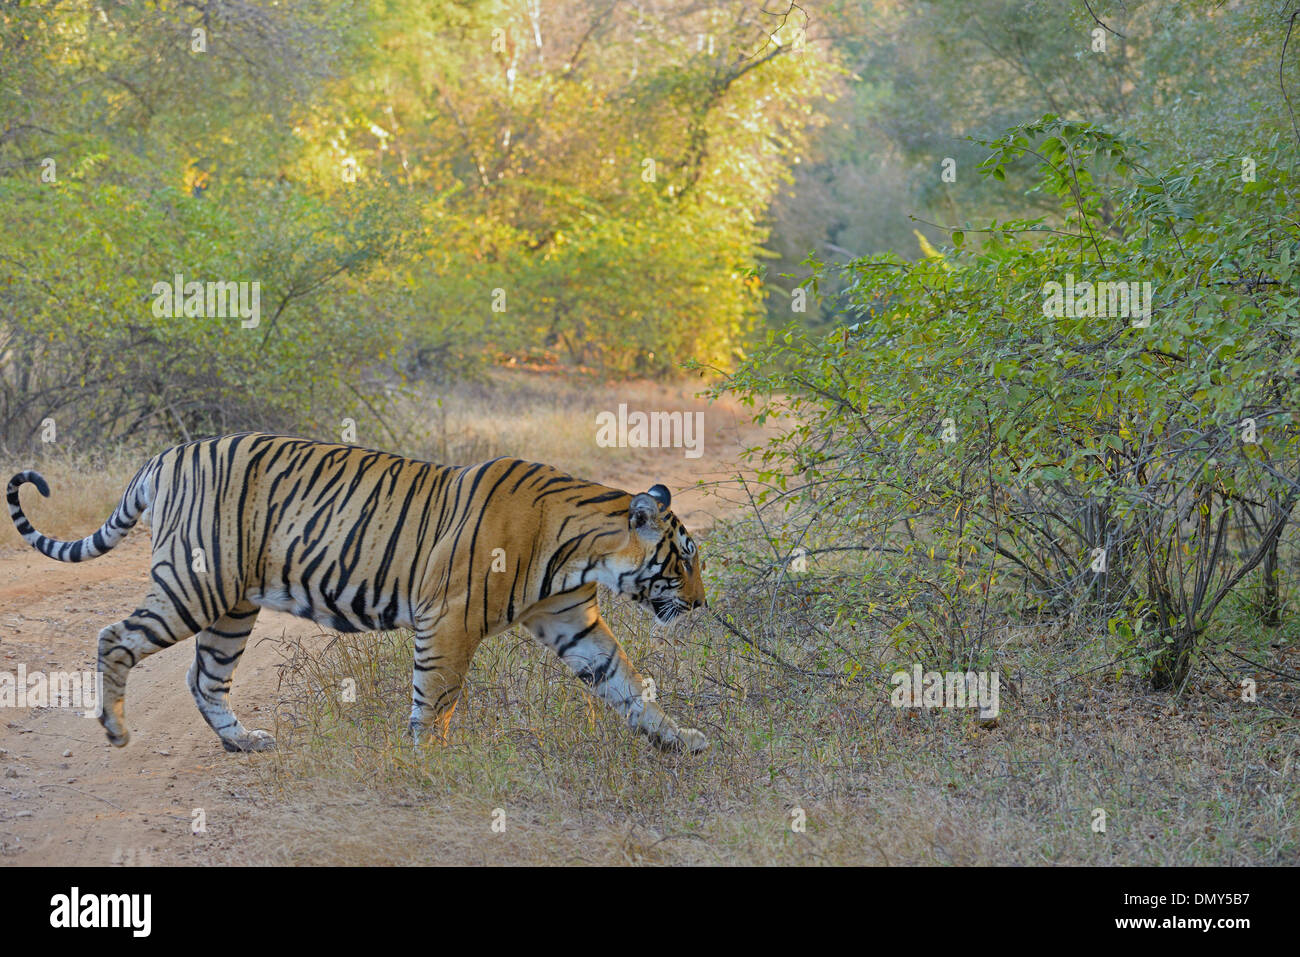 Tiger walking through a dry deciduous forest in Ranthambhore - Stock Image